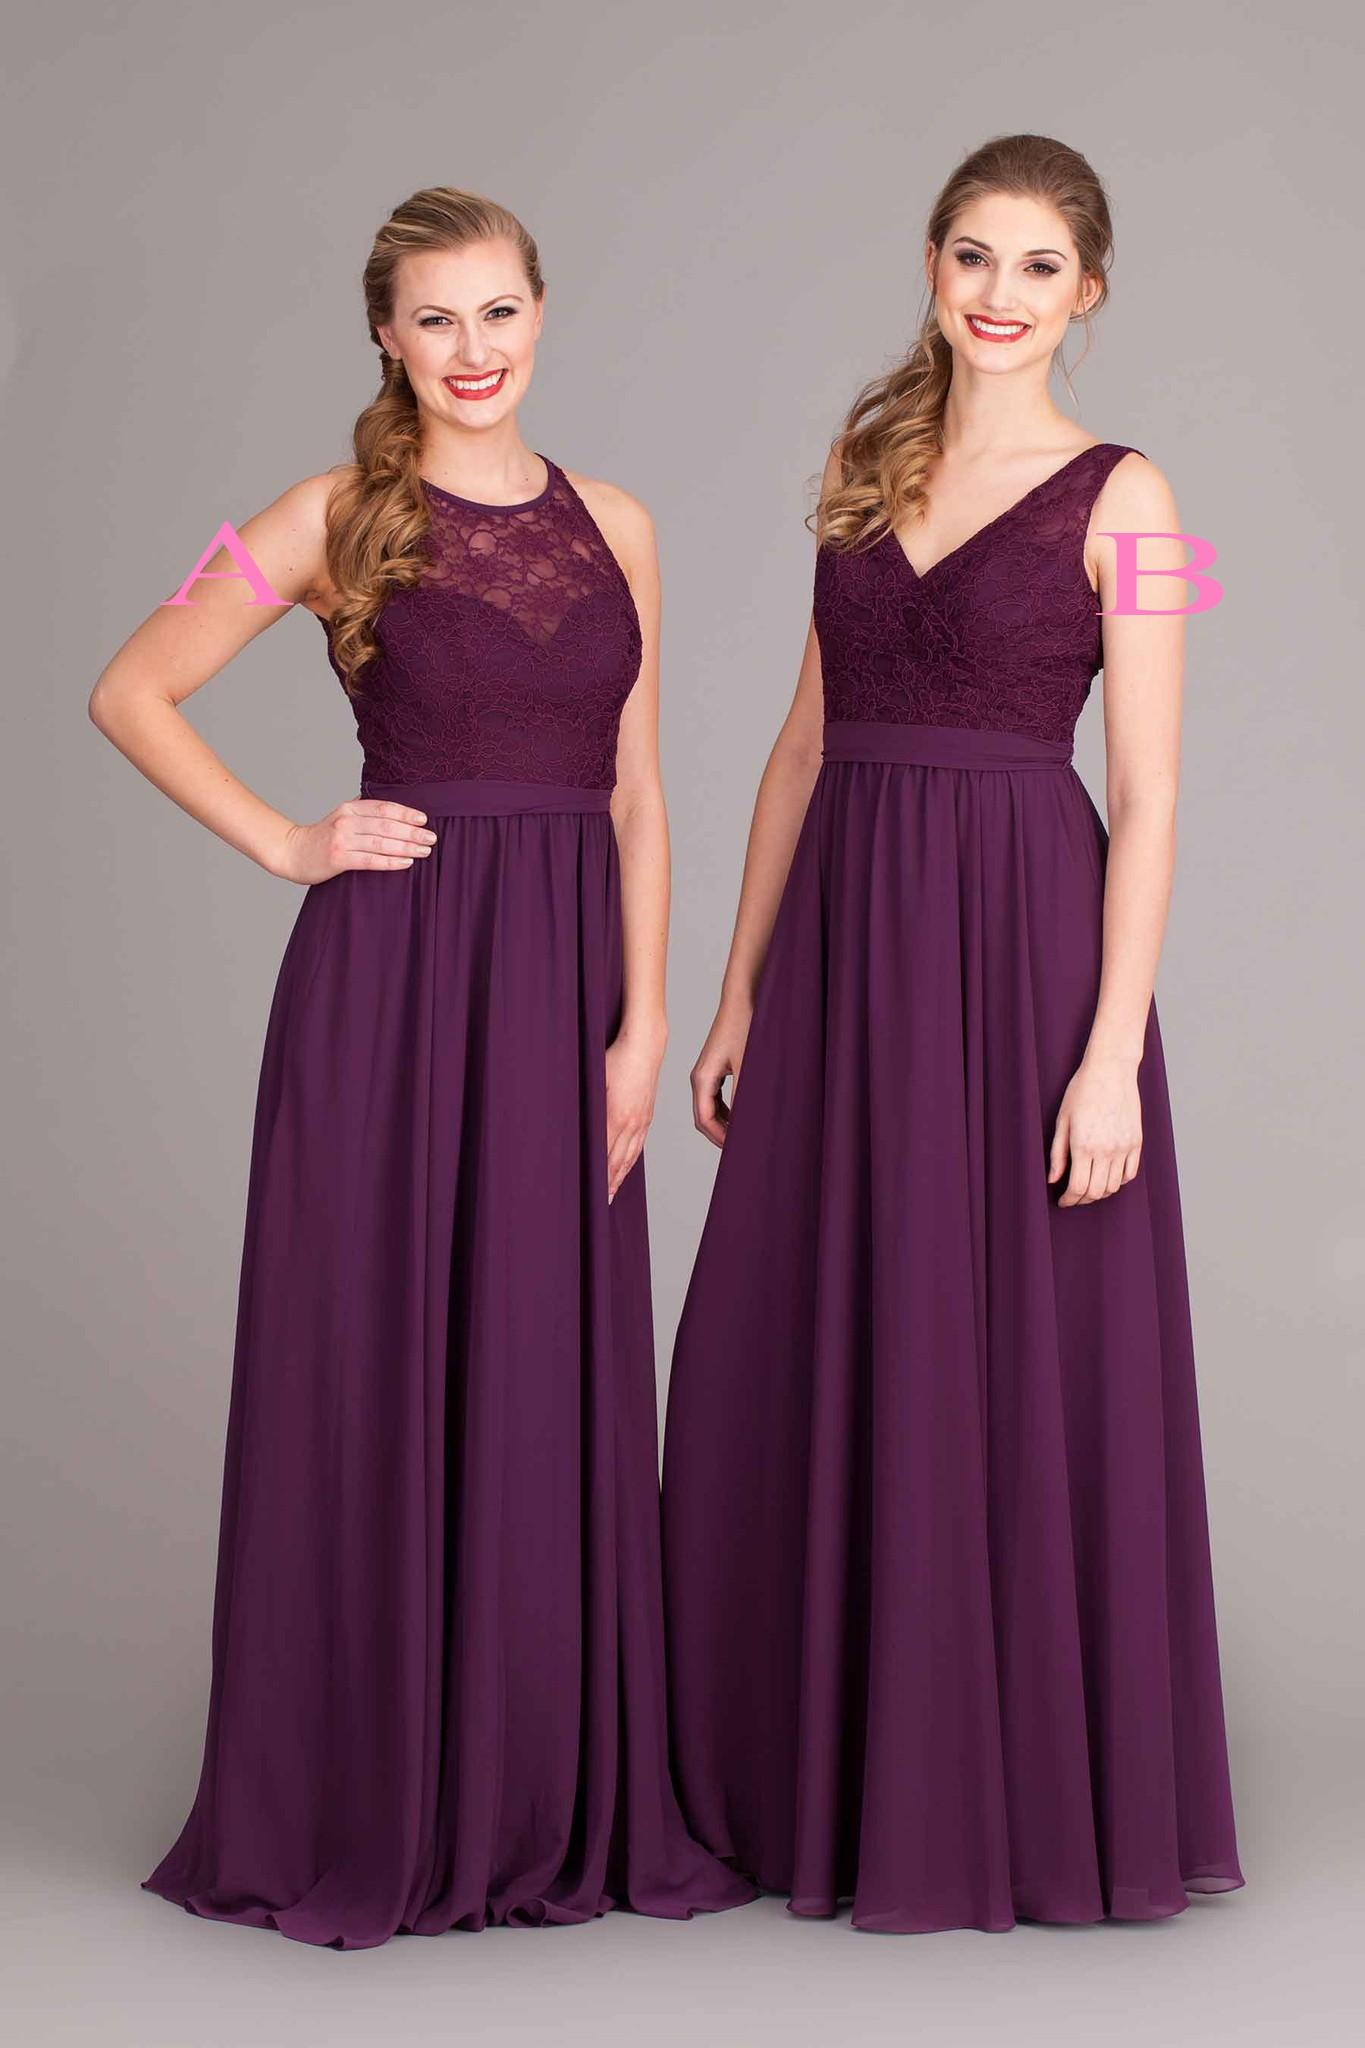 Bridesmaid Dresses Cork Choice Image - Braidsmaid Dress, Cocktail ...